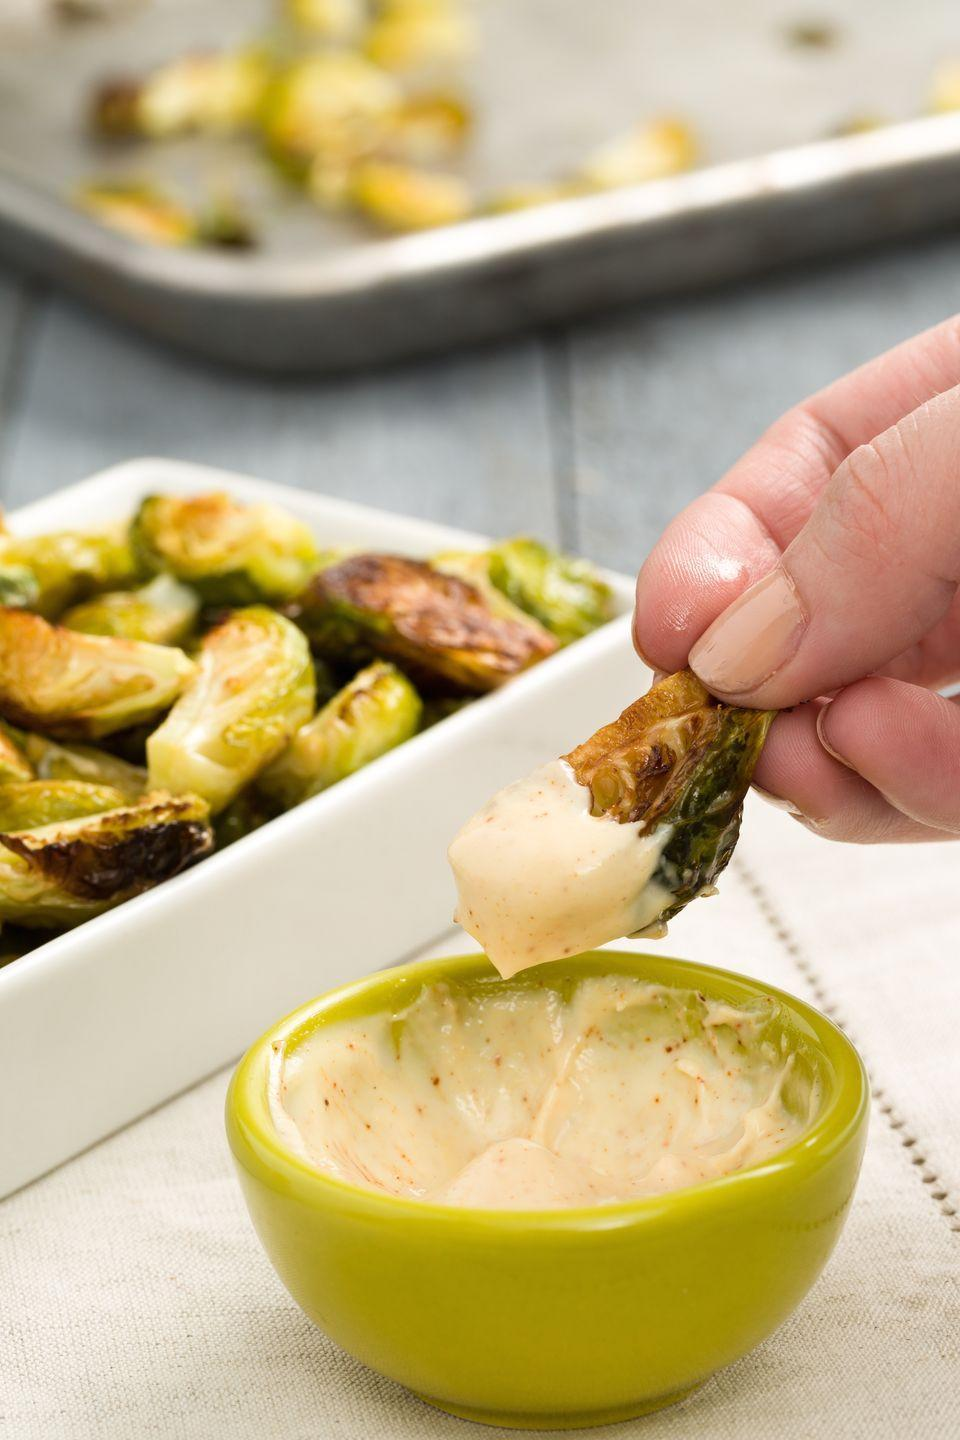 "<p>If you're making brussels sprouts as a dinner side dish, just make extra for a dip-able app. Two-in-one FTW!</p><p>Get the recipe from <a href=""/holiday-recipes/thanksgiving/recipes/a44806/crispy-brussels-sprouts-with-spicy-aioli-recipe/"" data-ylk=""slk:Delish"" class=""link rapid-noclick-resp"">Delish</a>.</p>"